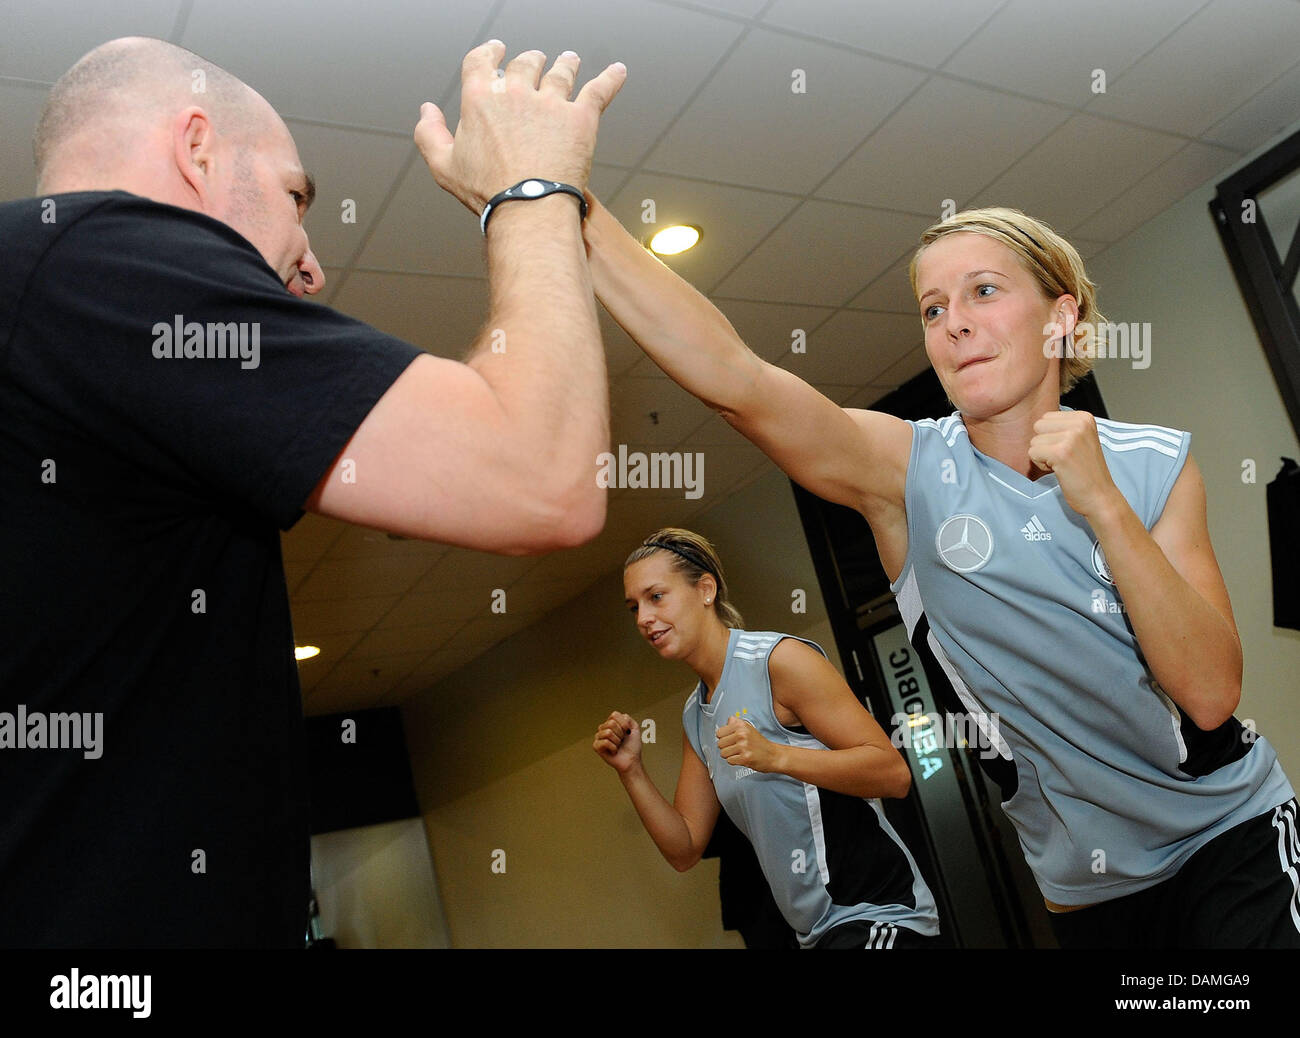 Saskia Bartusiak (R) of the German national soccer team boxes with a trainer during a training session at a Fitness - Stock Image